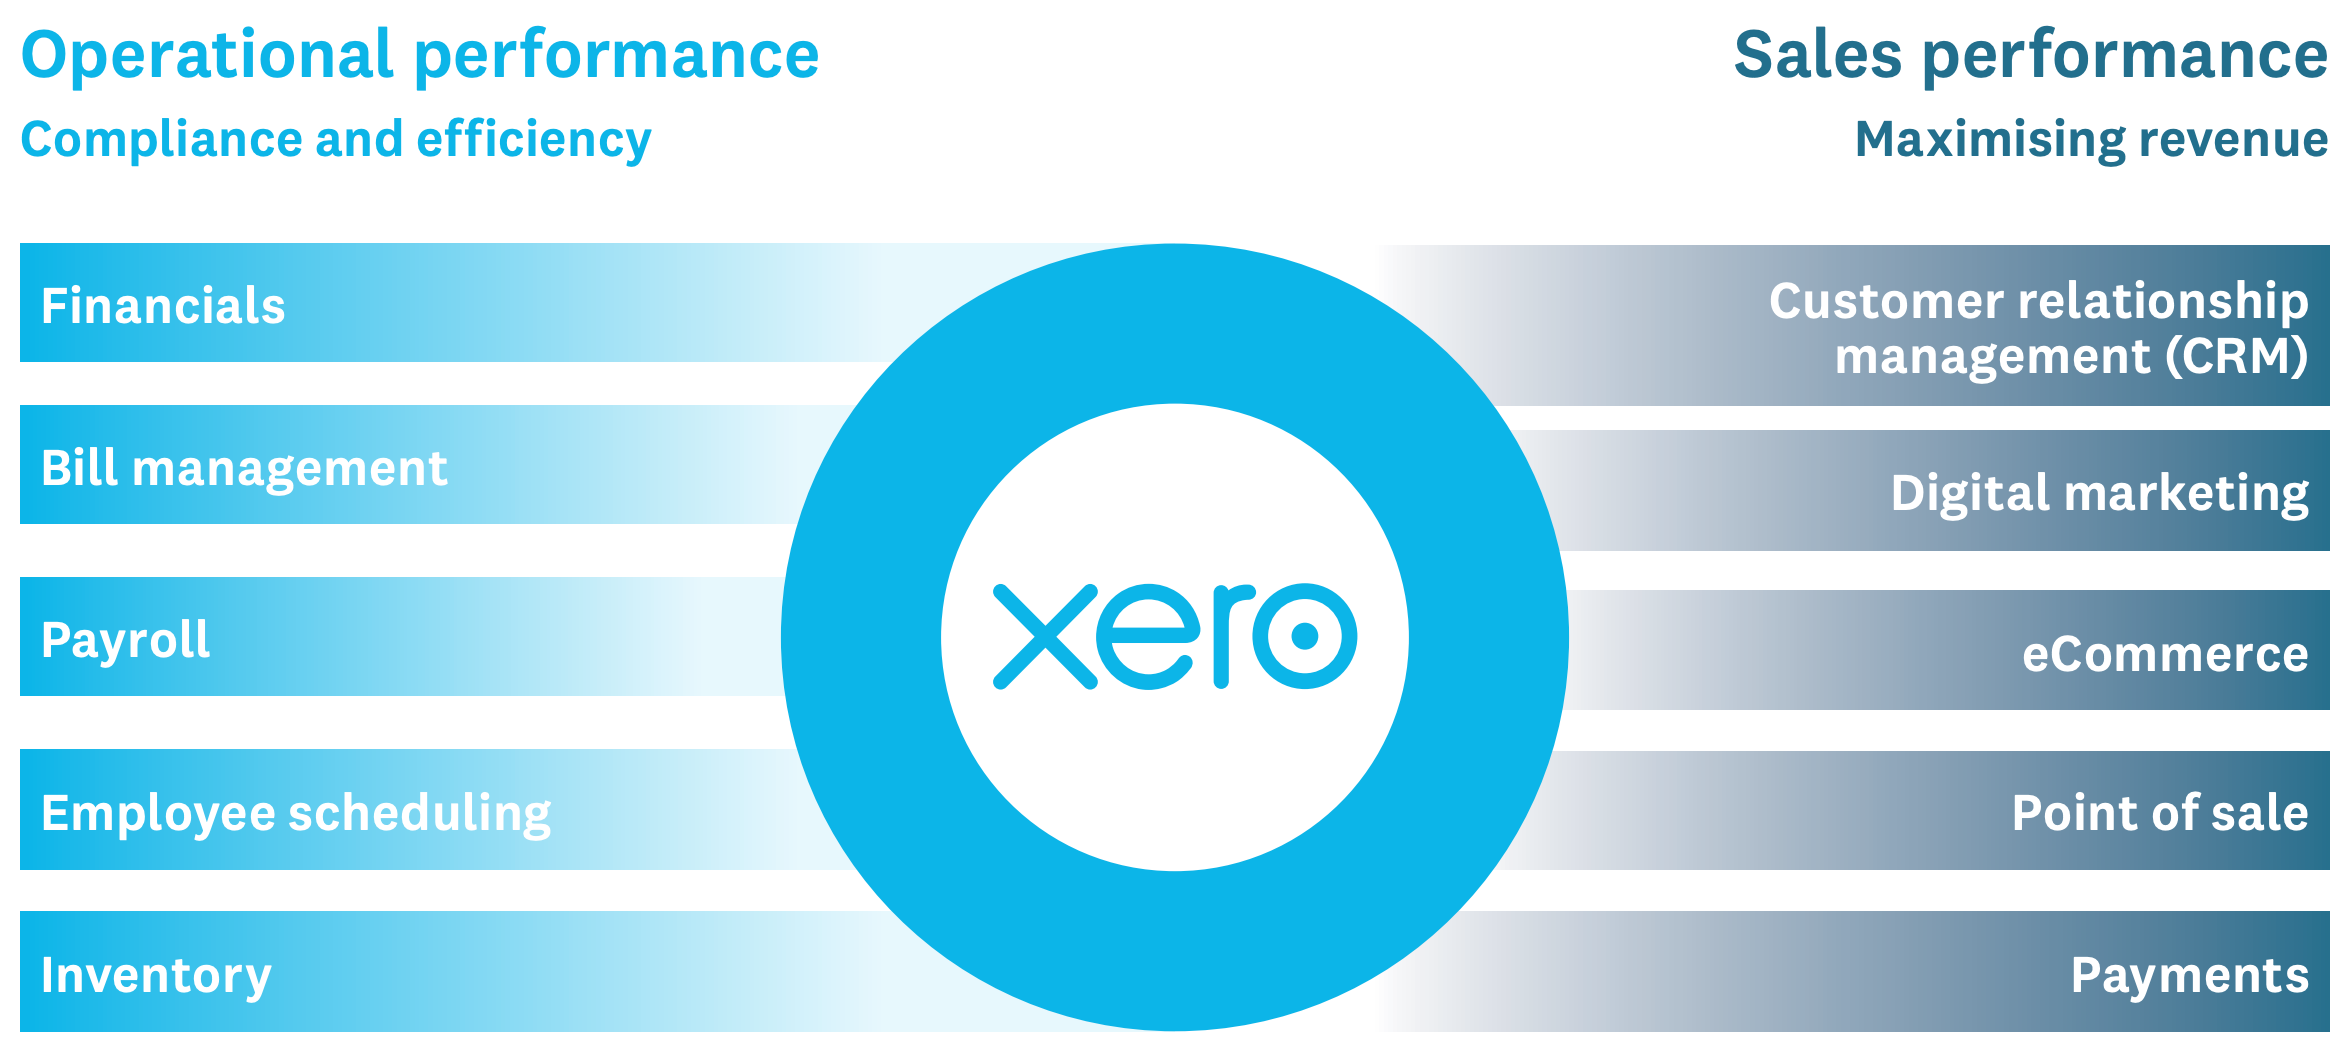 Xero Key focus areas for hospitality advisory